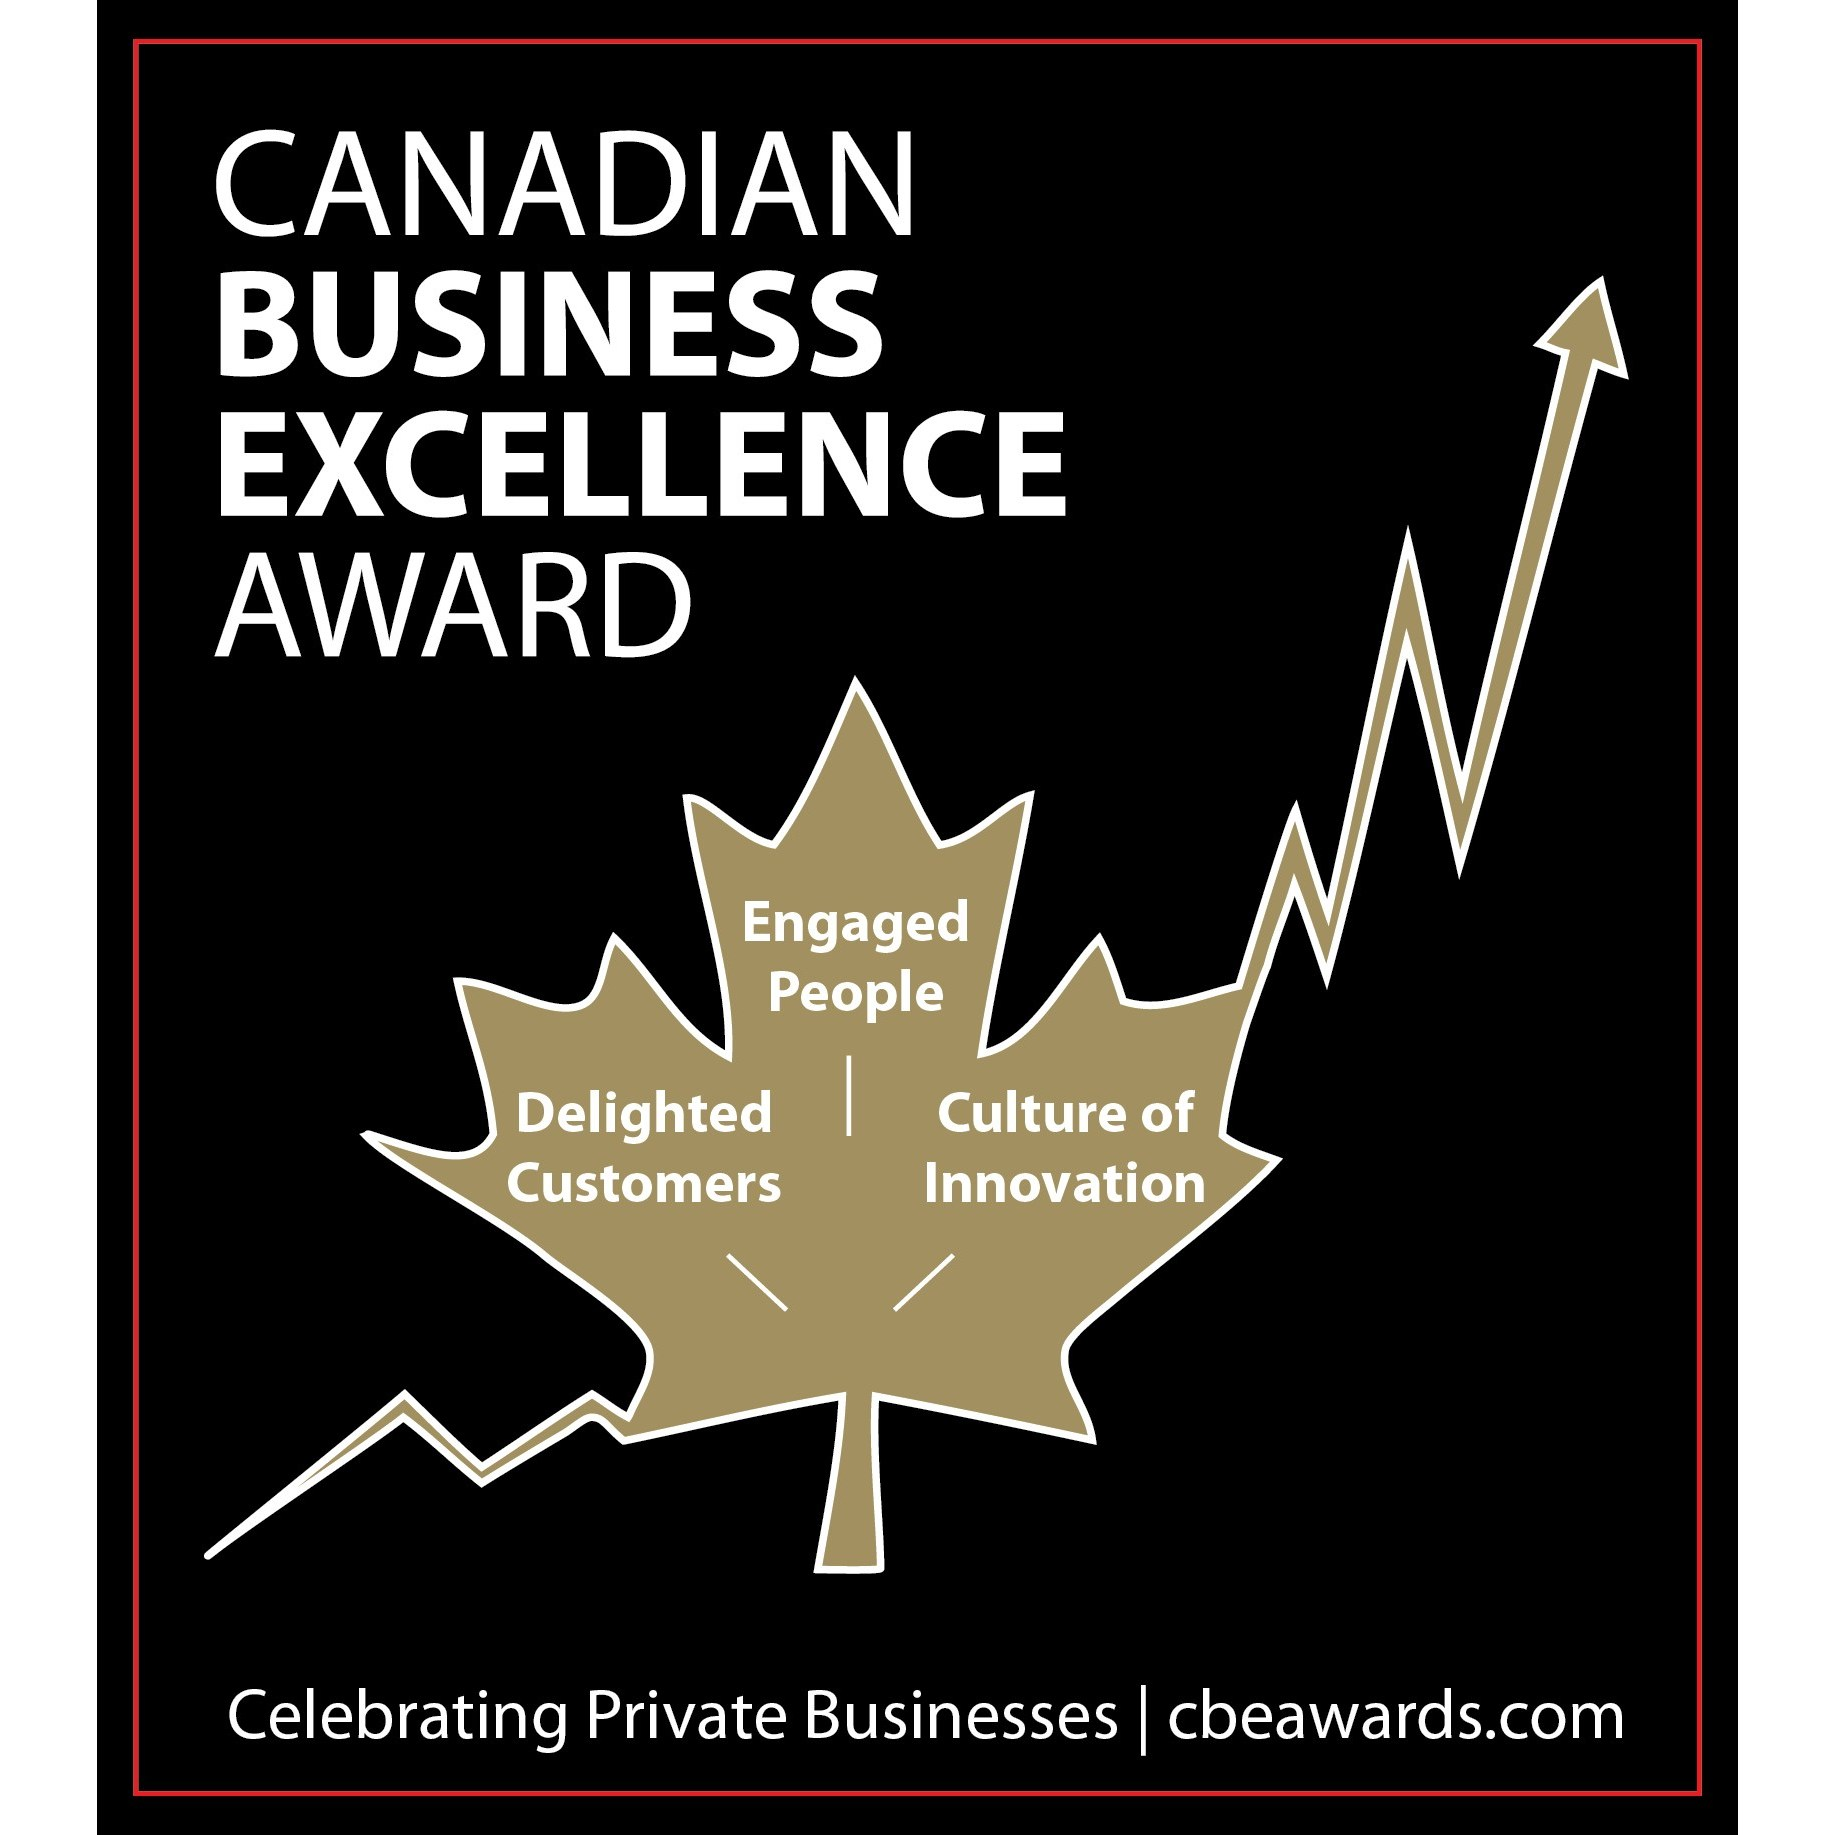 business culture of canada Are 'fat and happy' canadians too chicken to invest in growth and innovation canadians may be known around the world for their modesty and lack of aggressiveness, but that same culture may be at the heart of what's keeping the country's businesses from maximizing their potential.